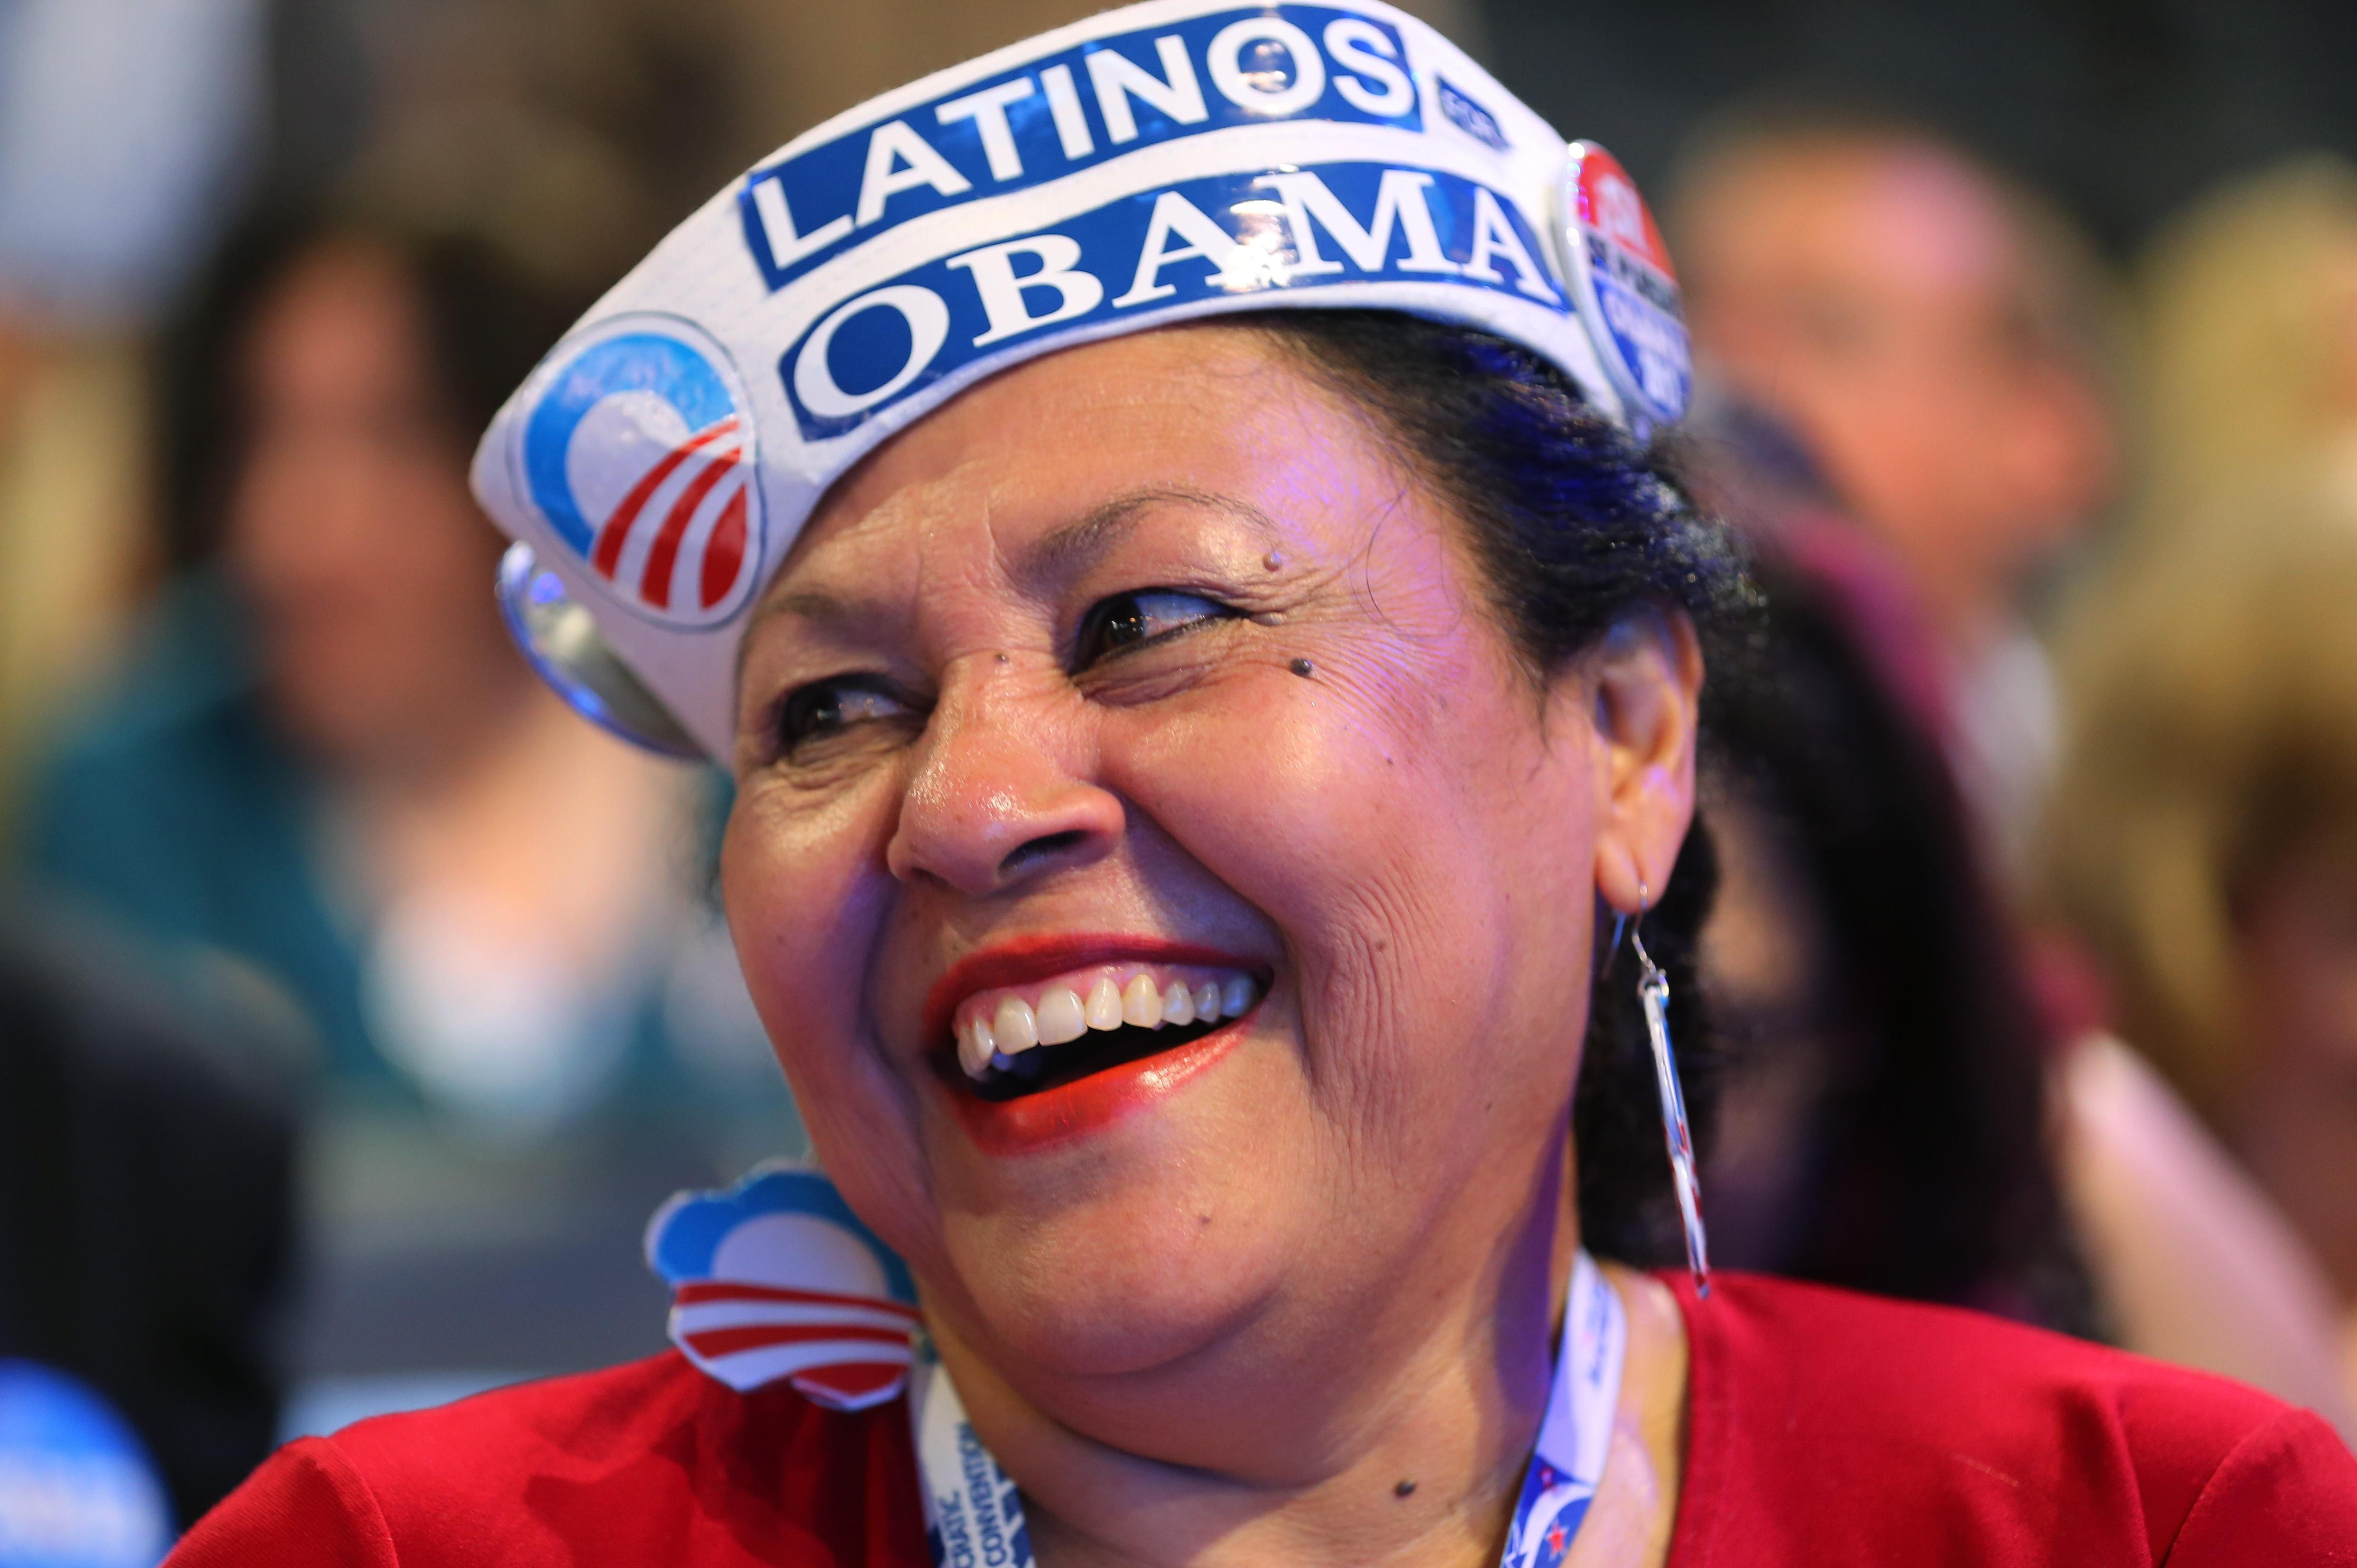 Delegate Antonia Gonzalez of Seattle, WA wears a Latinos for Obama hat during day one of the Democratic National Convention at Time Warner Cable Arena on September 4, 2012 in Charlotte, North Carolina. The DNC that will run through September 7, will nominate U.S. President Barack Obama as the Democratic presidential candidate. (Photo by Joe Raedle/Getty Images)